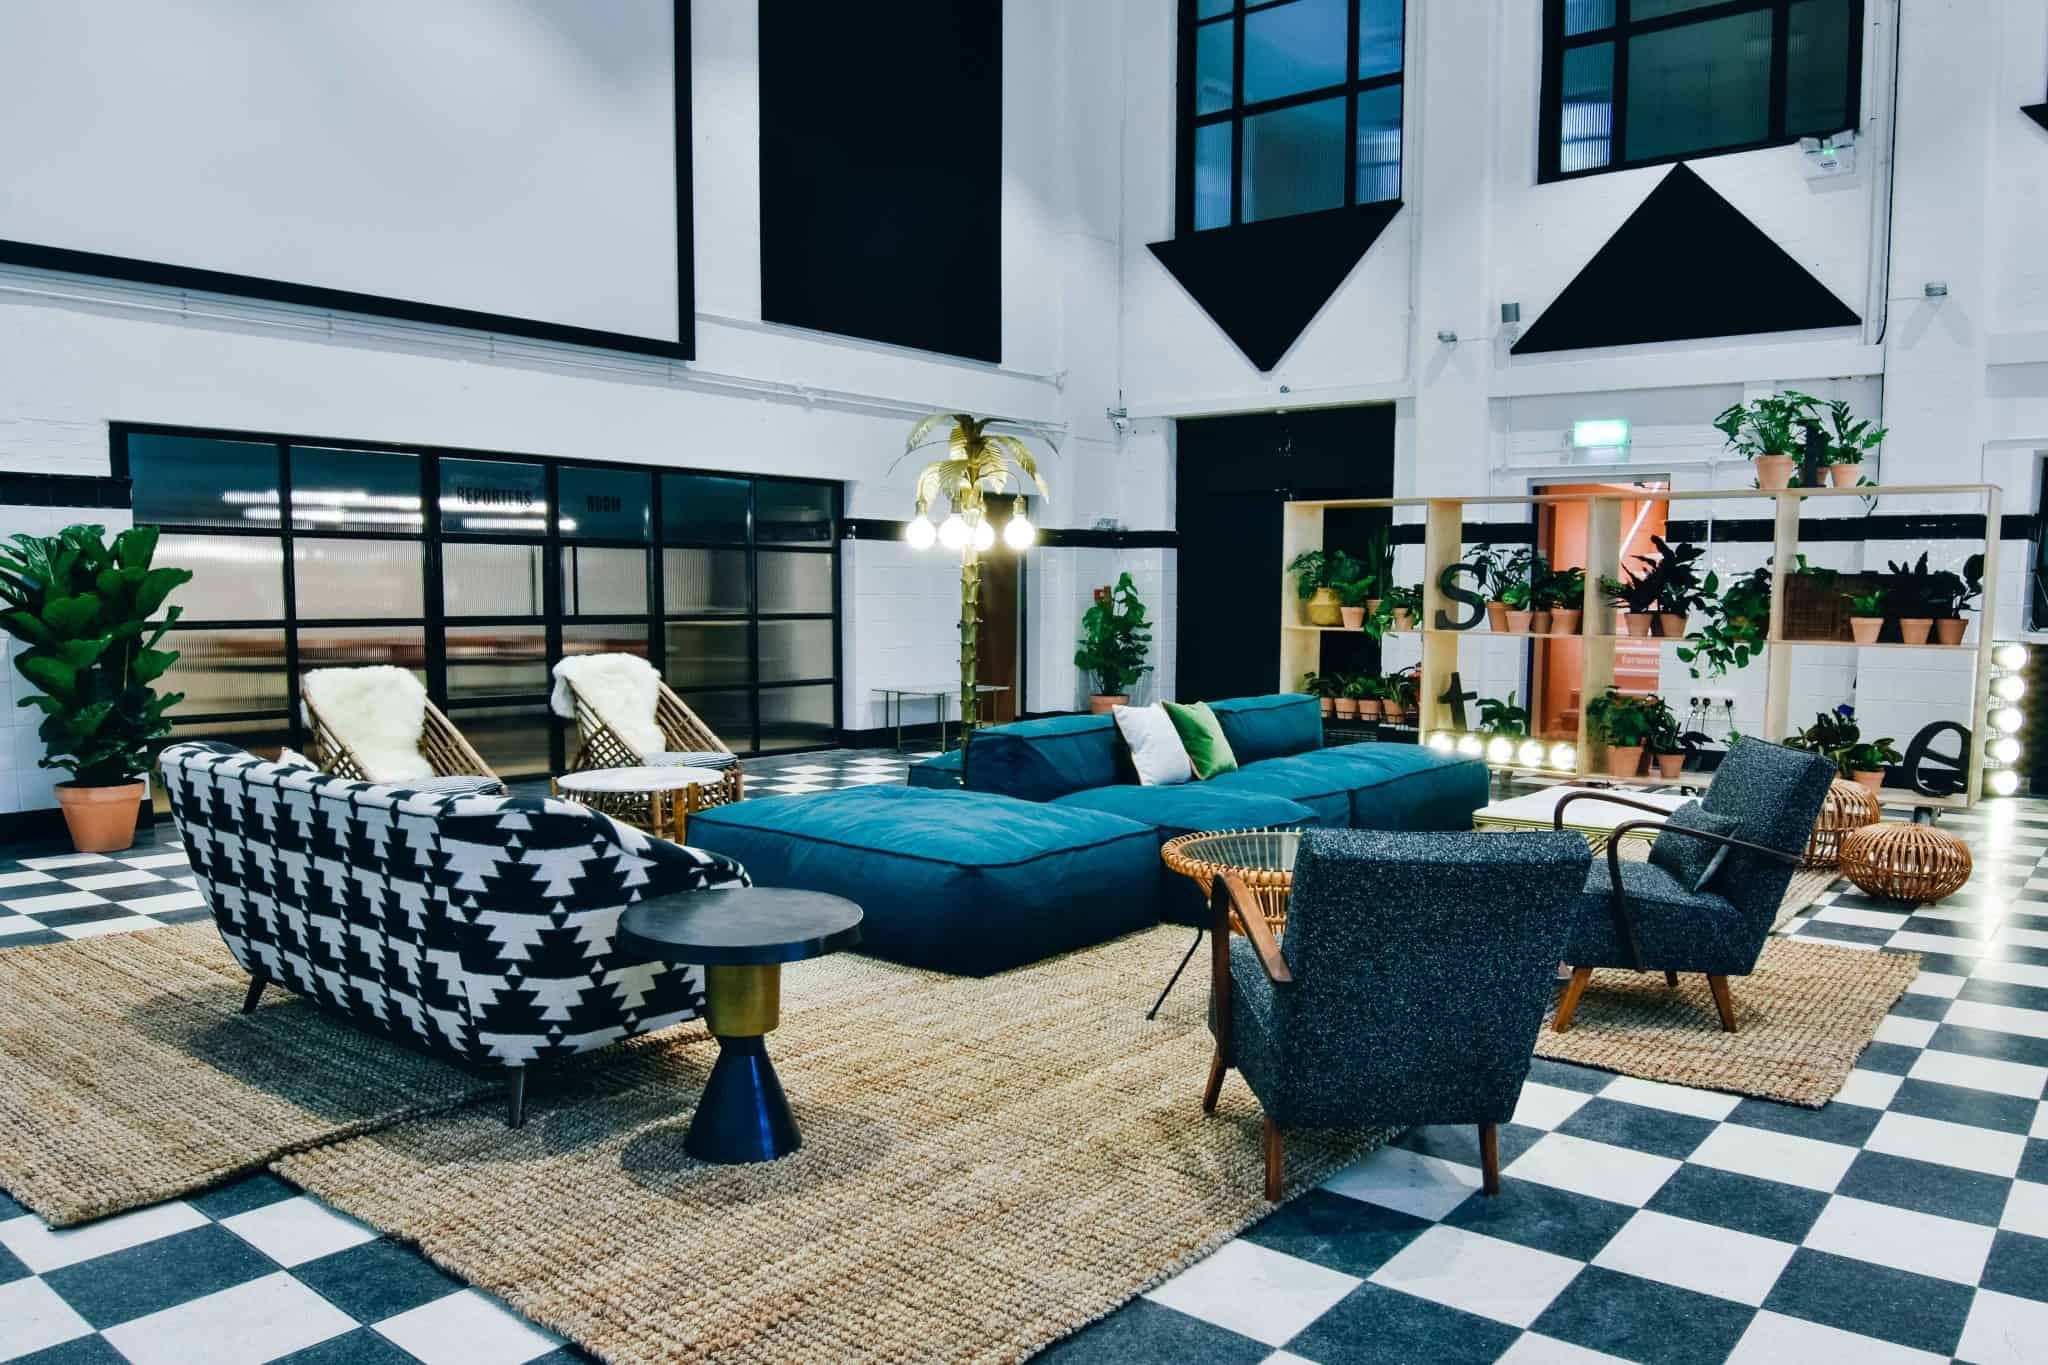 THIS Workspace coworking space in Bournemouth - The Foundry main room